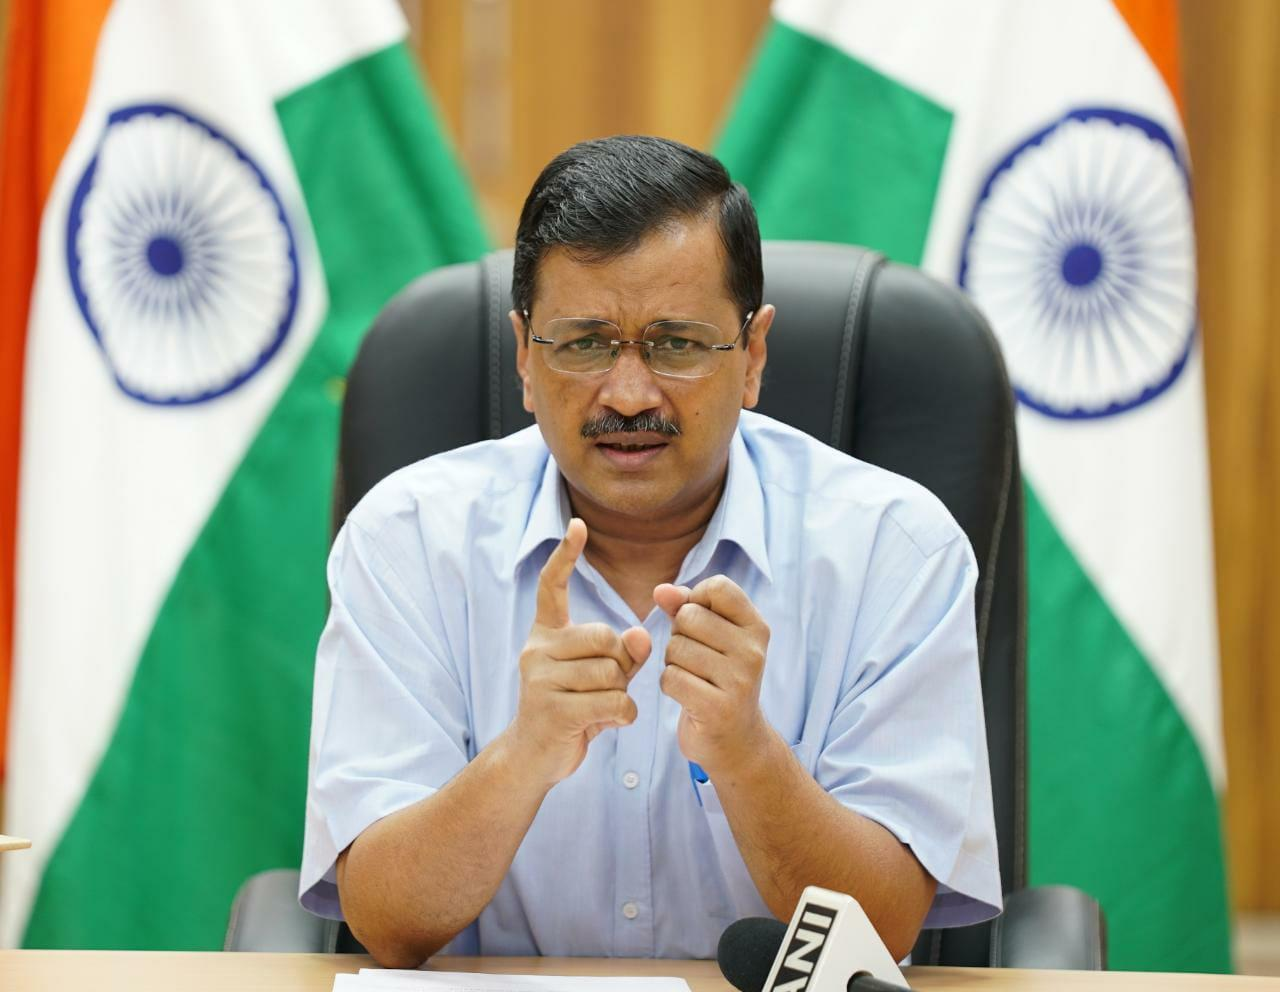 569 students of Delhi Govt schools cleared NEET Exam this year: CM